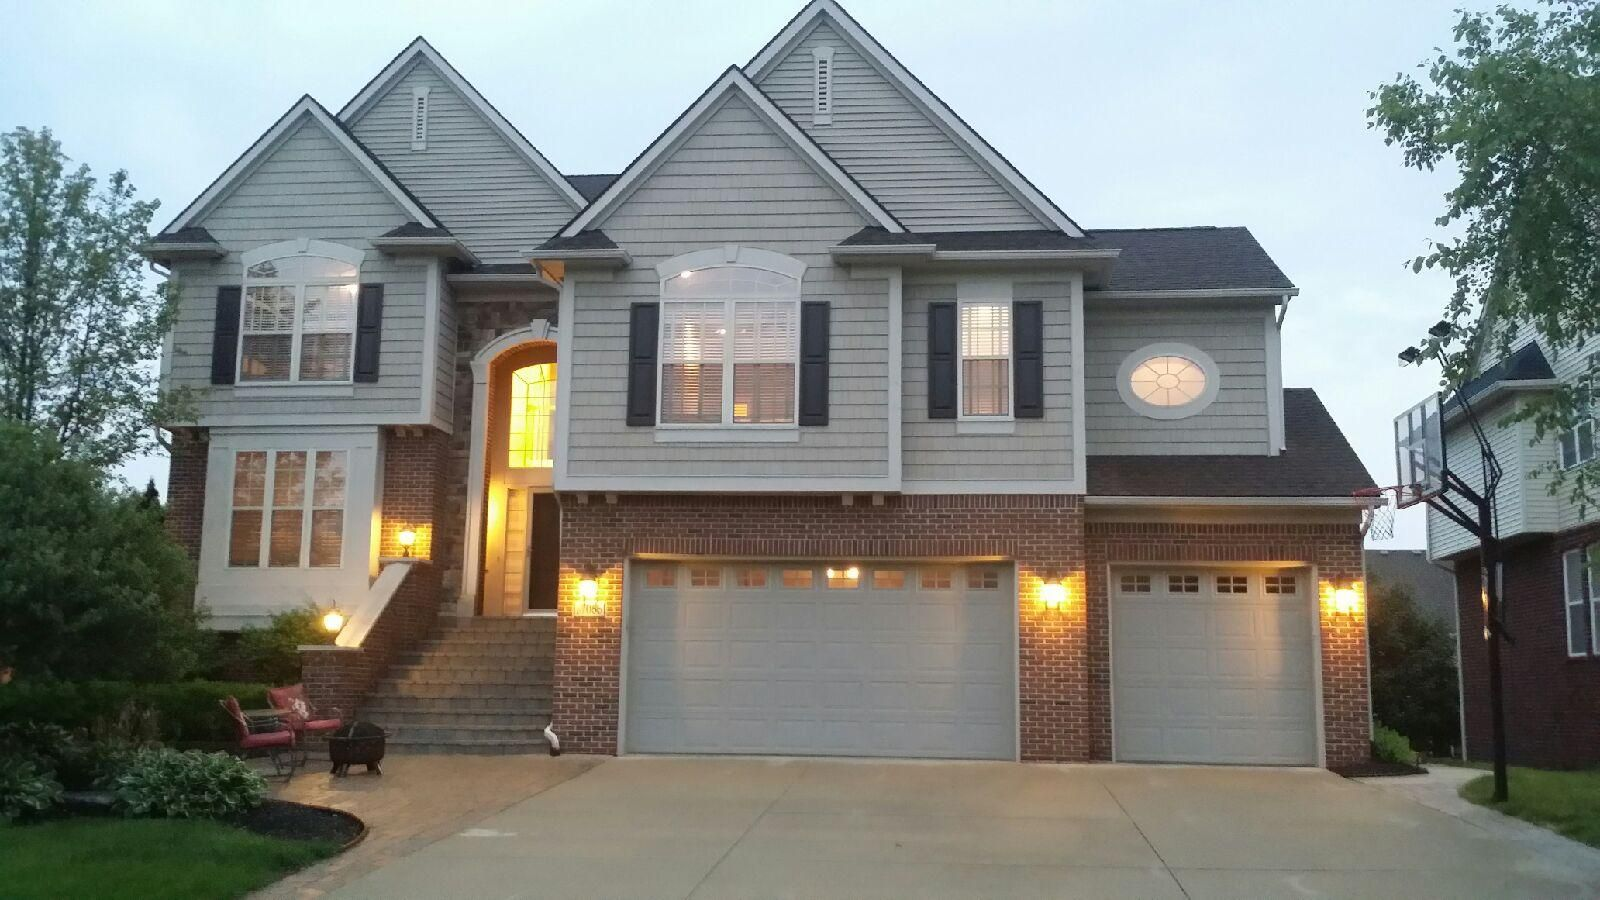 Recent top sale in Meadows of Northville Ridge by listing agent Corinne Madias Northville Kw  248 380 8800 Call for simple and free information.